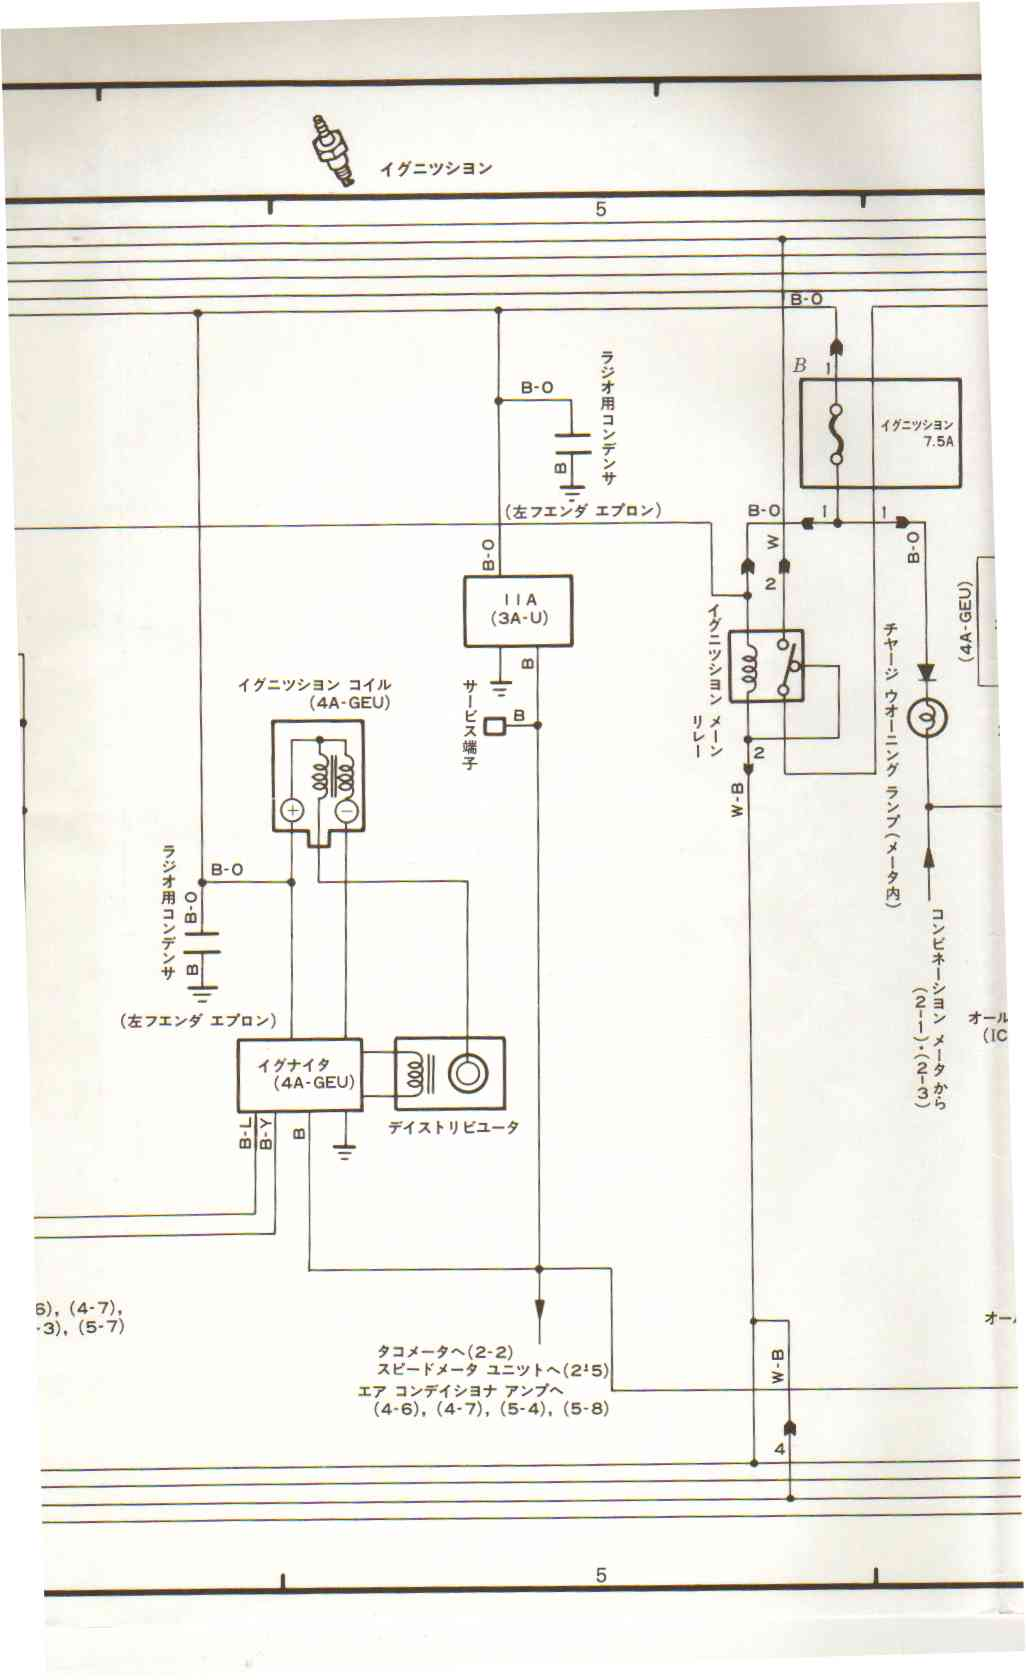 Ae86 Wiring Manual Control Diagram Ignition Coil Free Download Diagrams Pictures Toyota Cressida Fuse Box Rav4